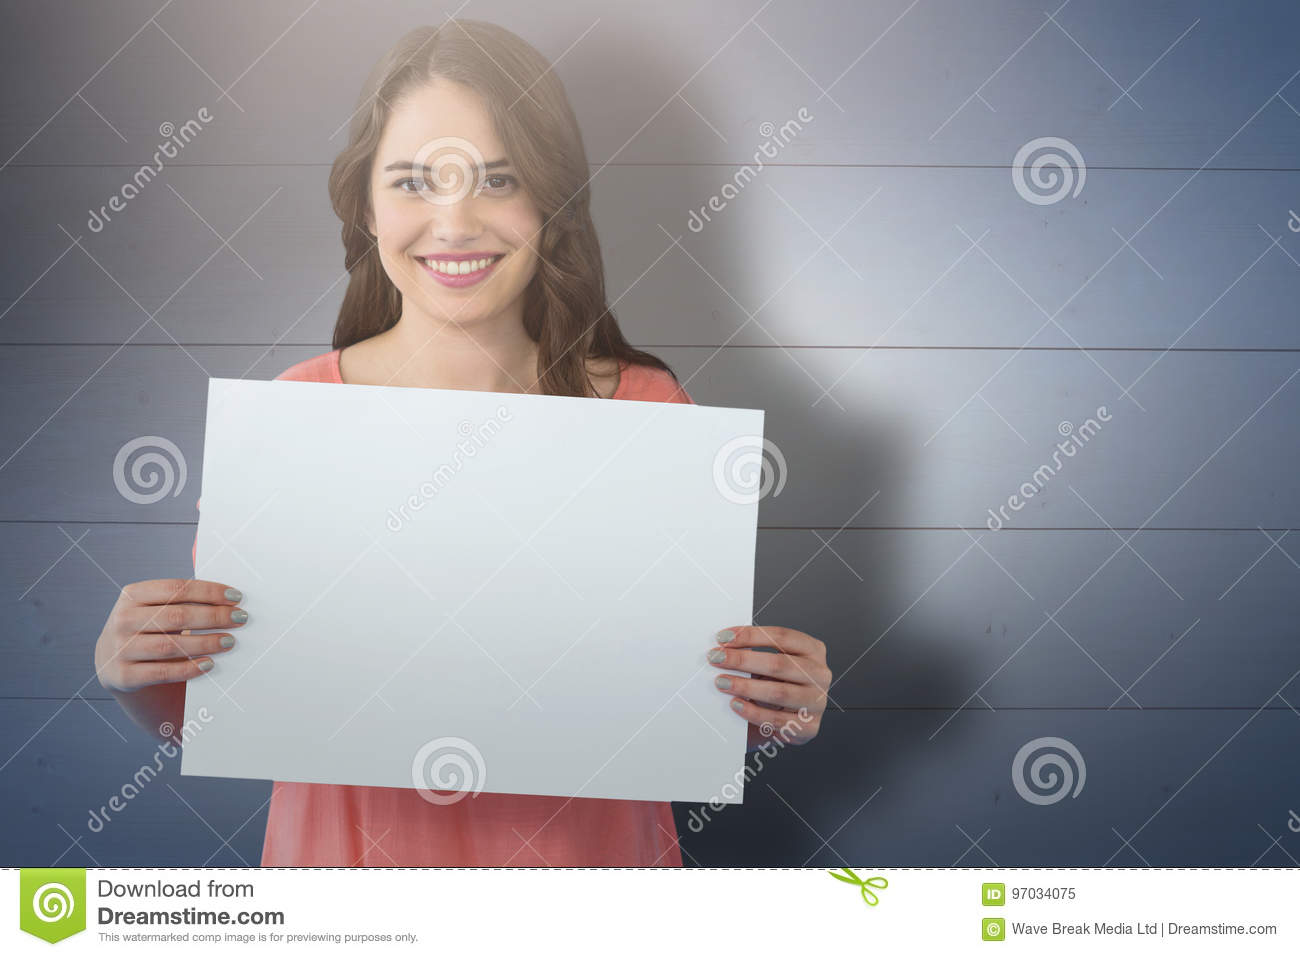 Composite image of women holding blank poster